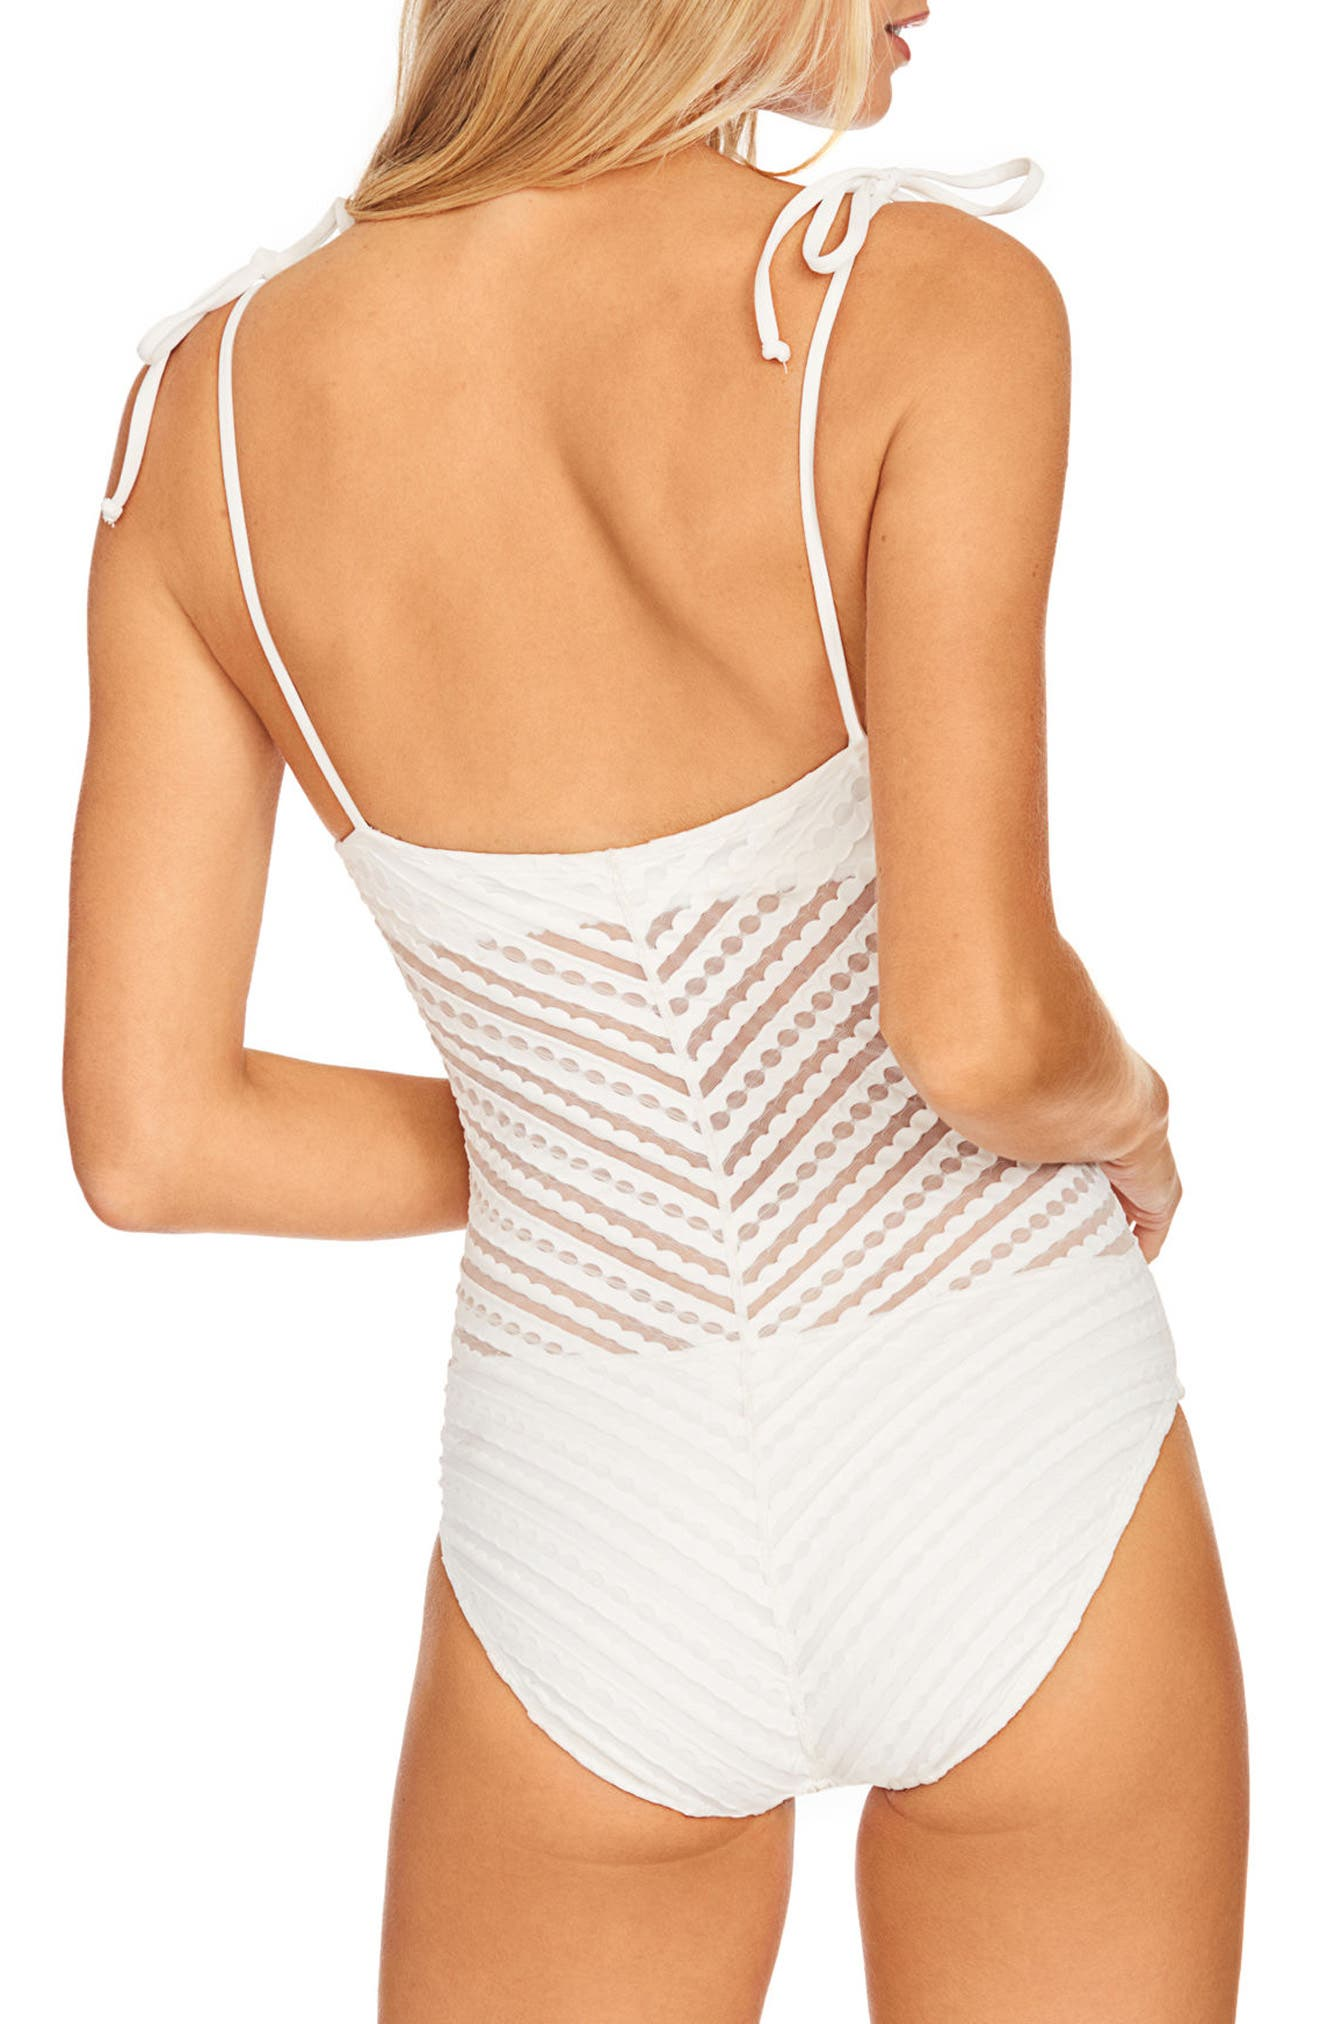 Carly One-Piece Swimsuit,                             Alternate thumbnail 2, color,                             White